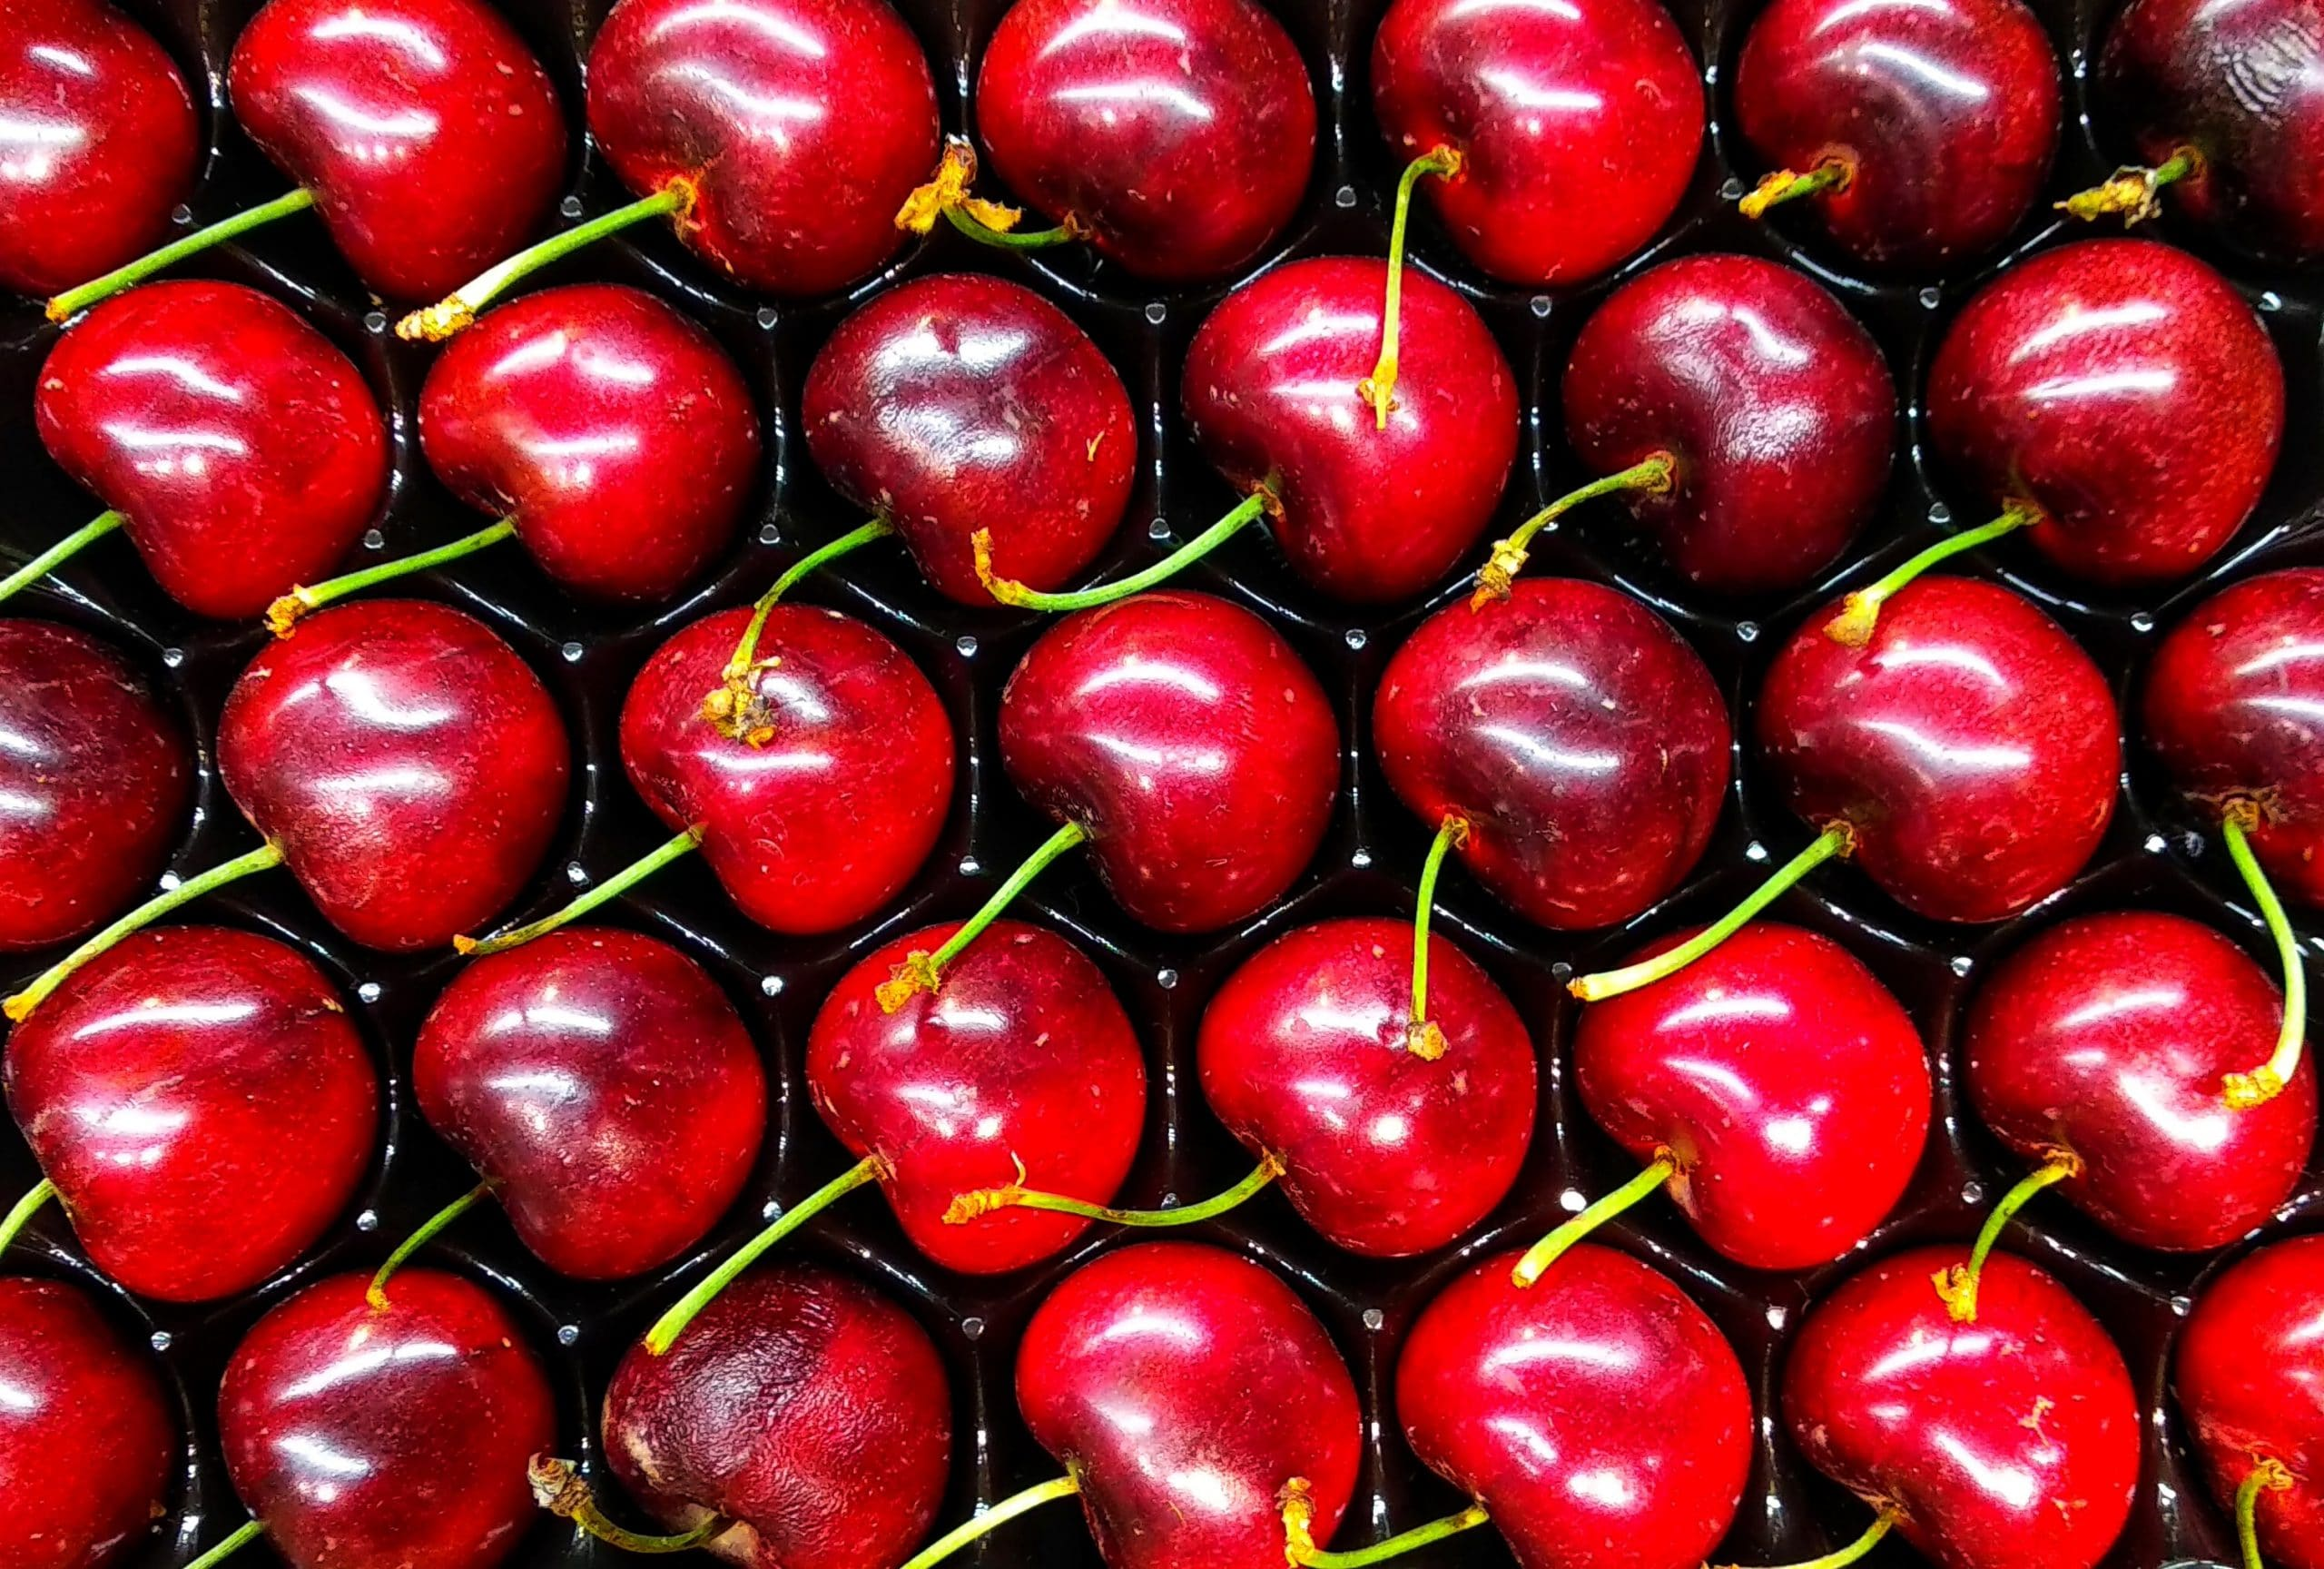 How do you store cherries properly